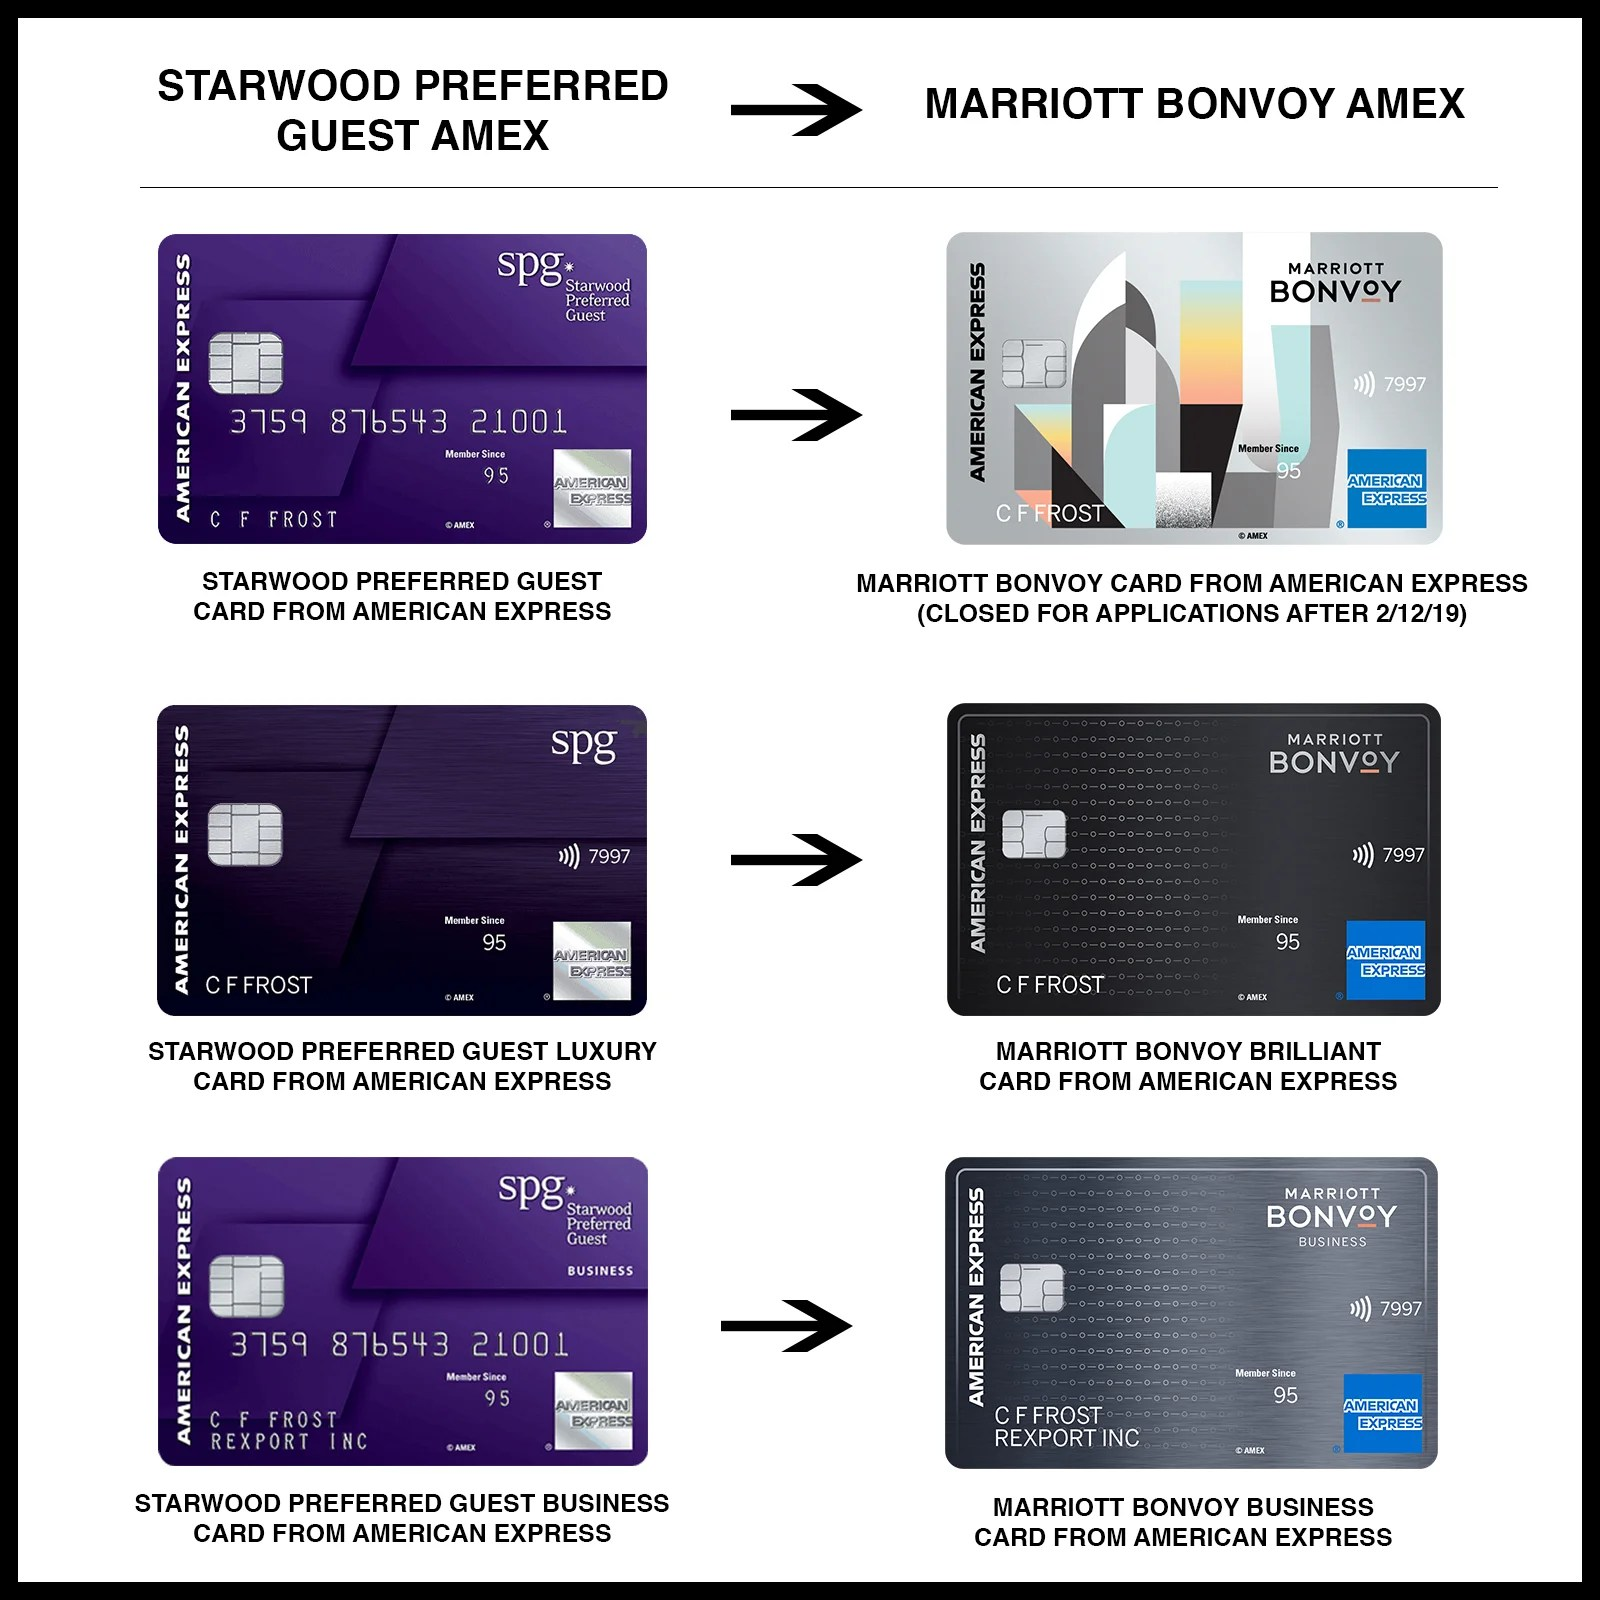 Best Marriott Credit Cards of 2019 - The Points Guy